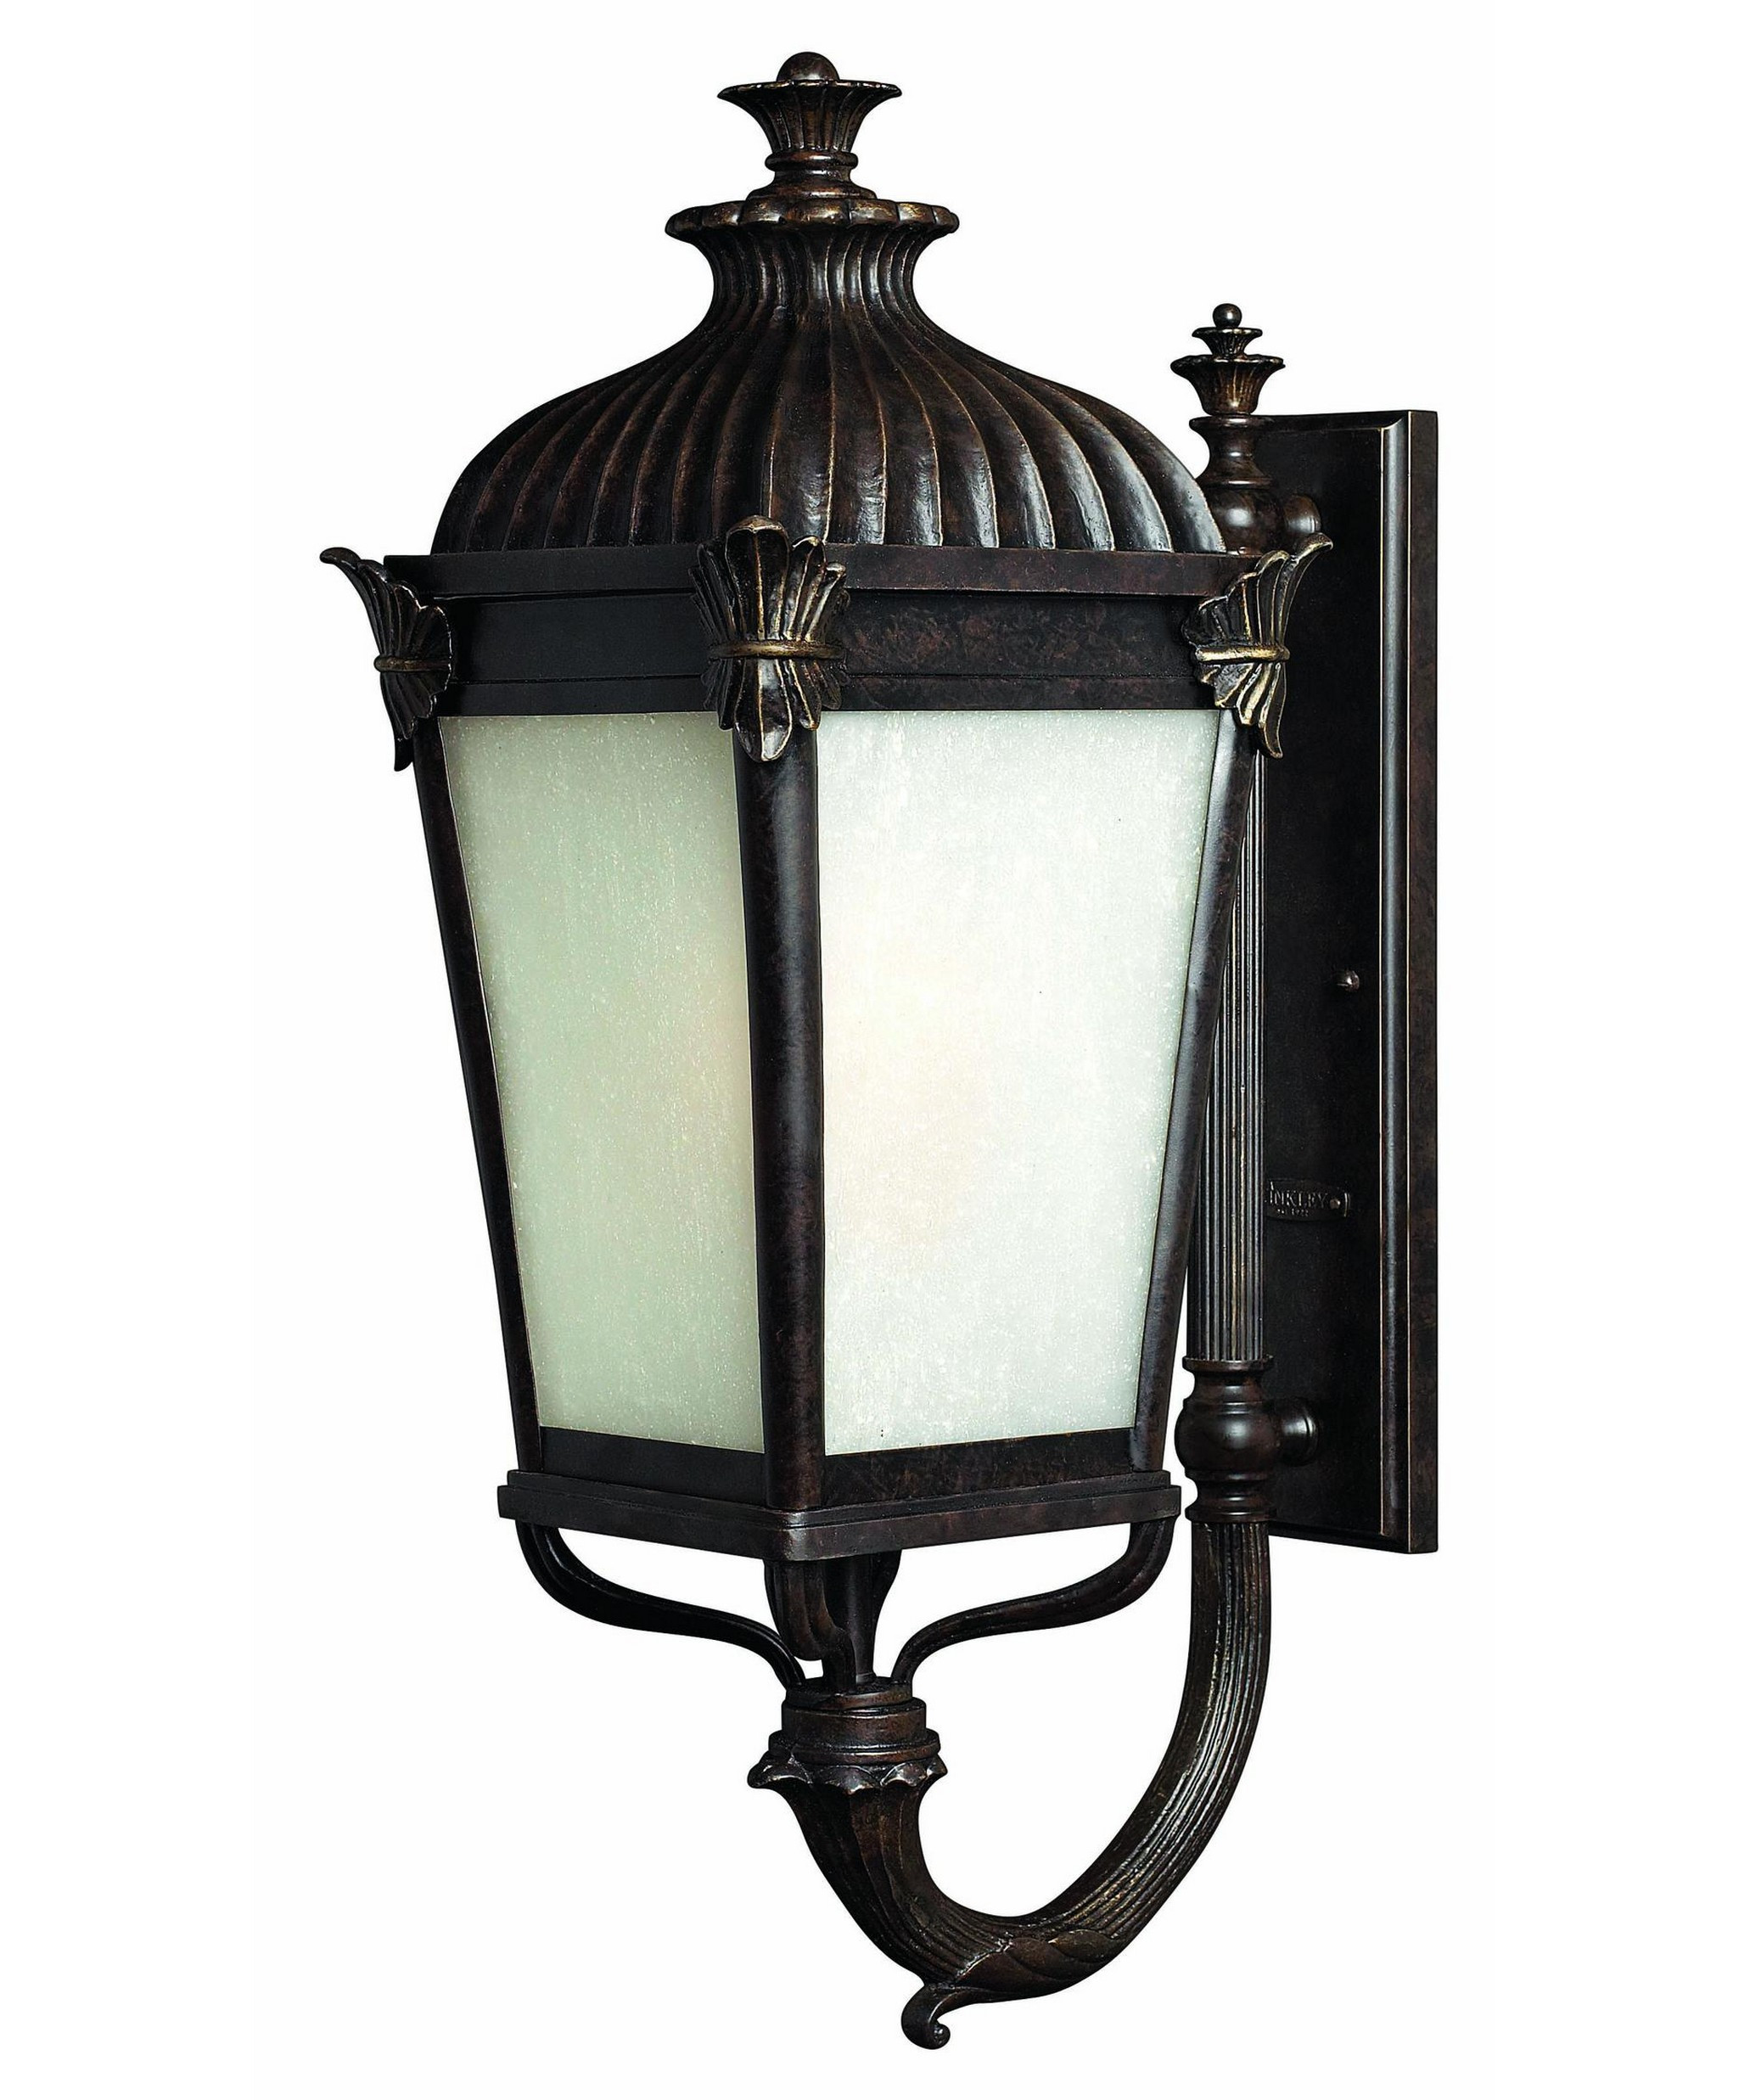 Best ideas about Home Depot Landscape Lighting . Save or Pin Shopping At The Home Depot Outdoor Lighting — Burlap Now.